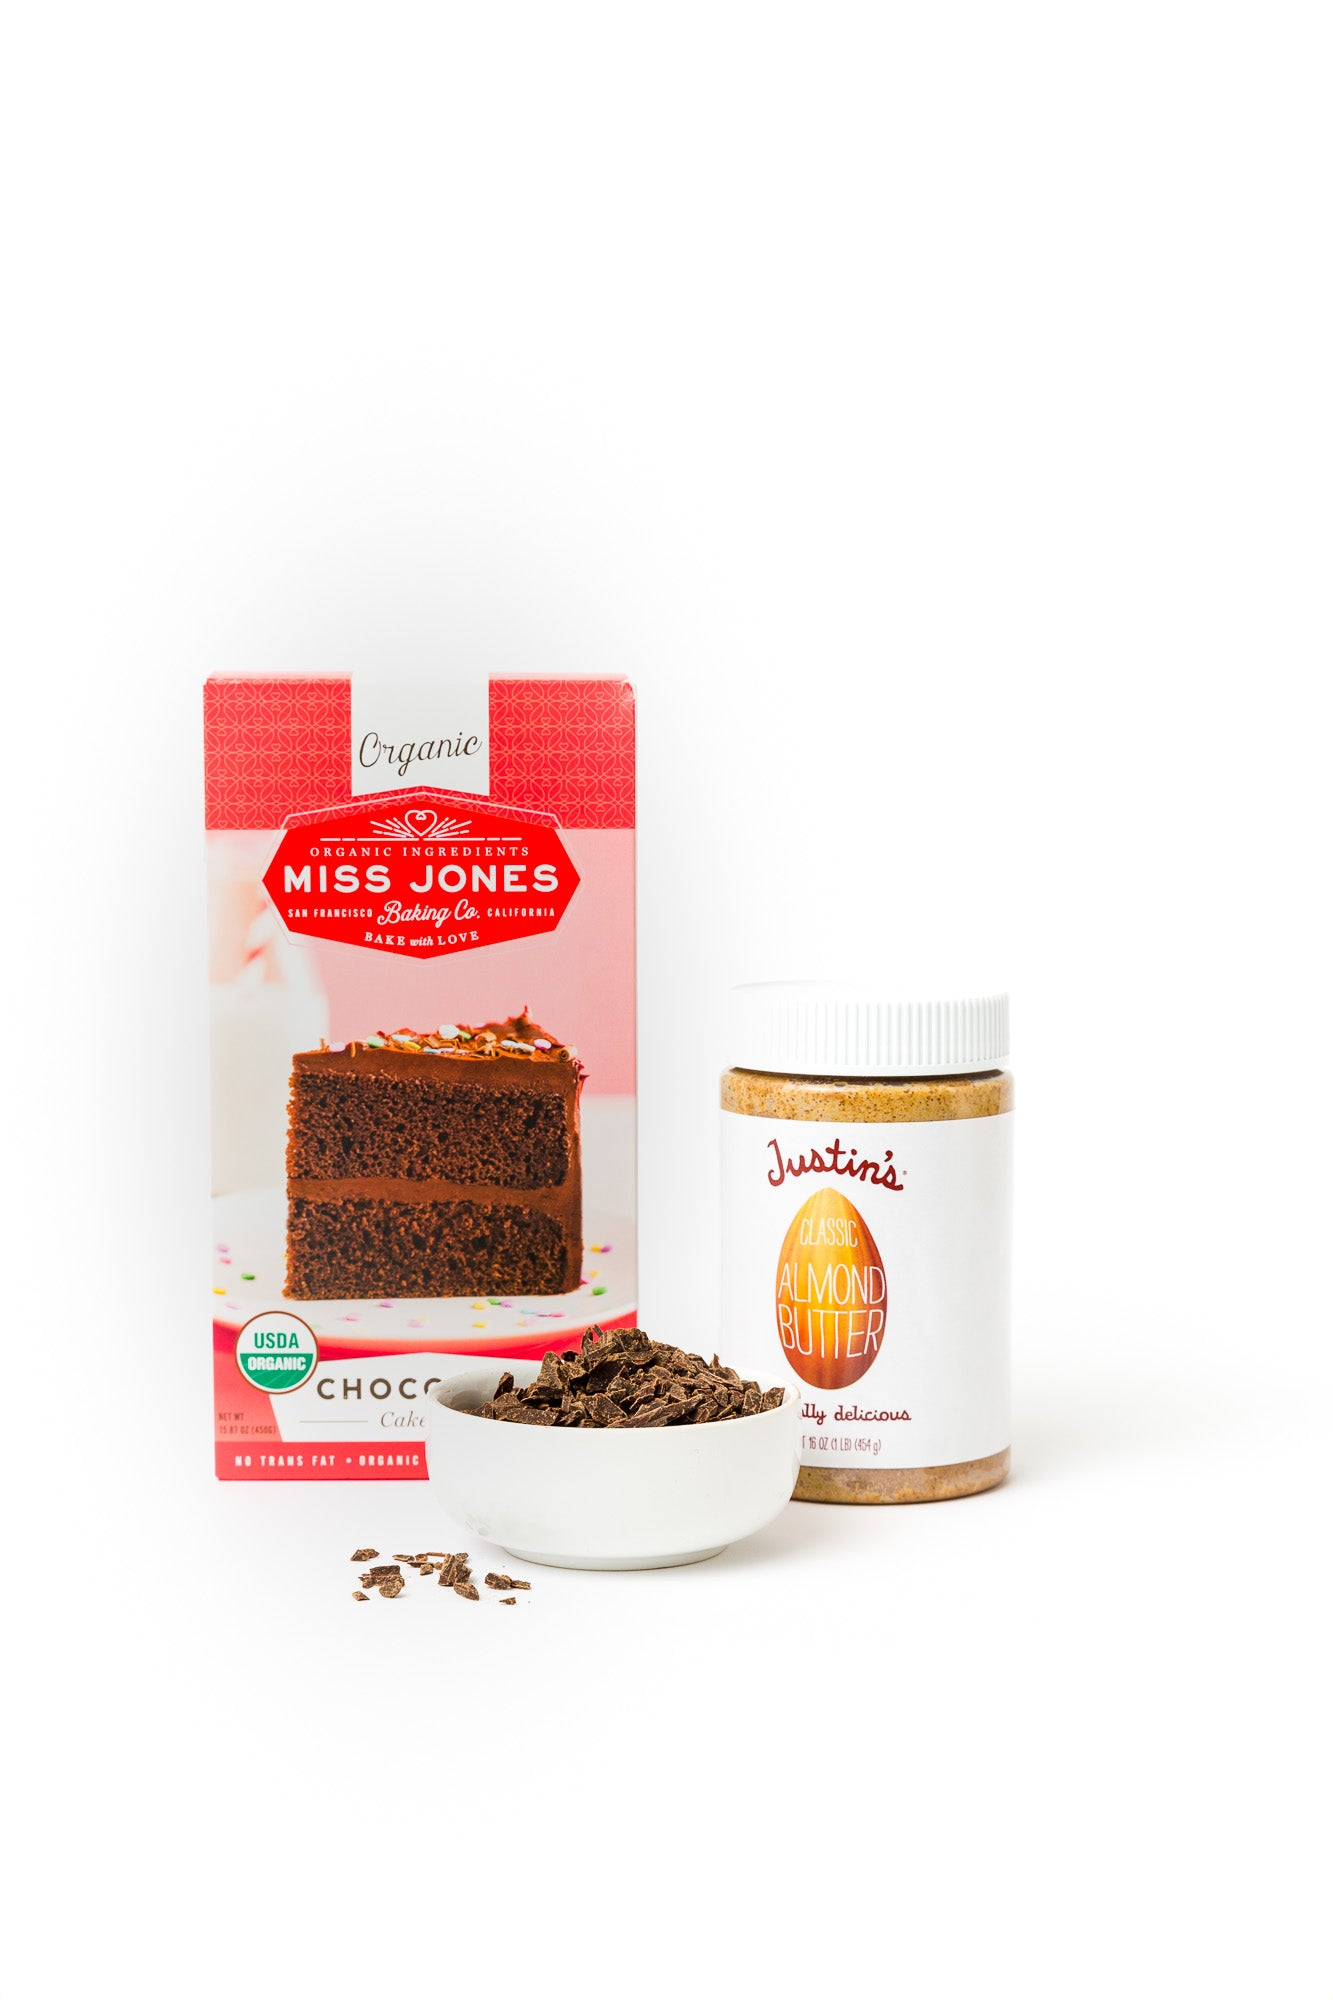 Image of Miss Jones Chocolate Cake Mix and Justin's Almond Butter behind a bowl of chocolate used for Miss Jones Baking Co Chocolate Almond Butter Bundt Cake recipe